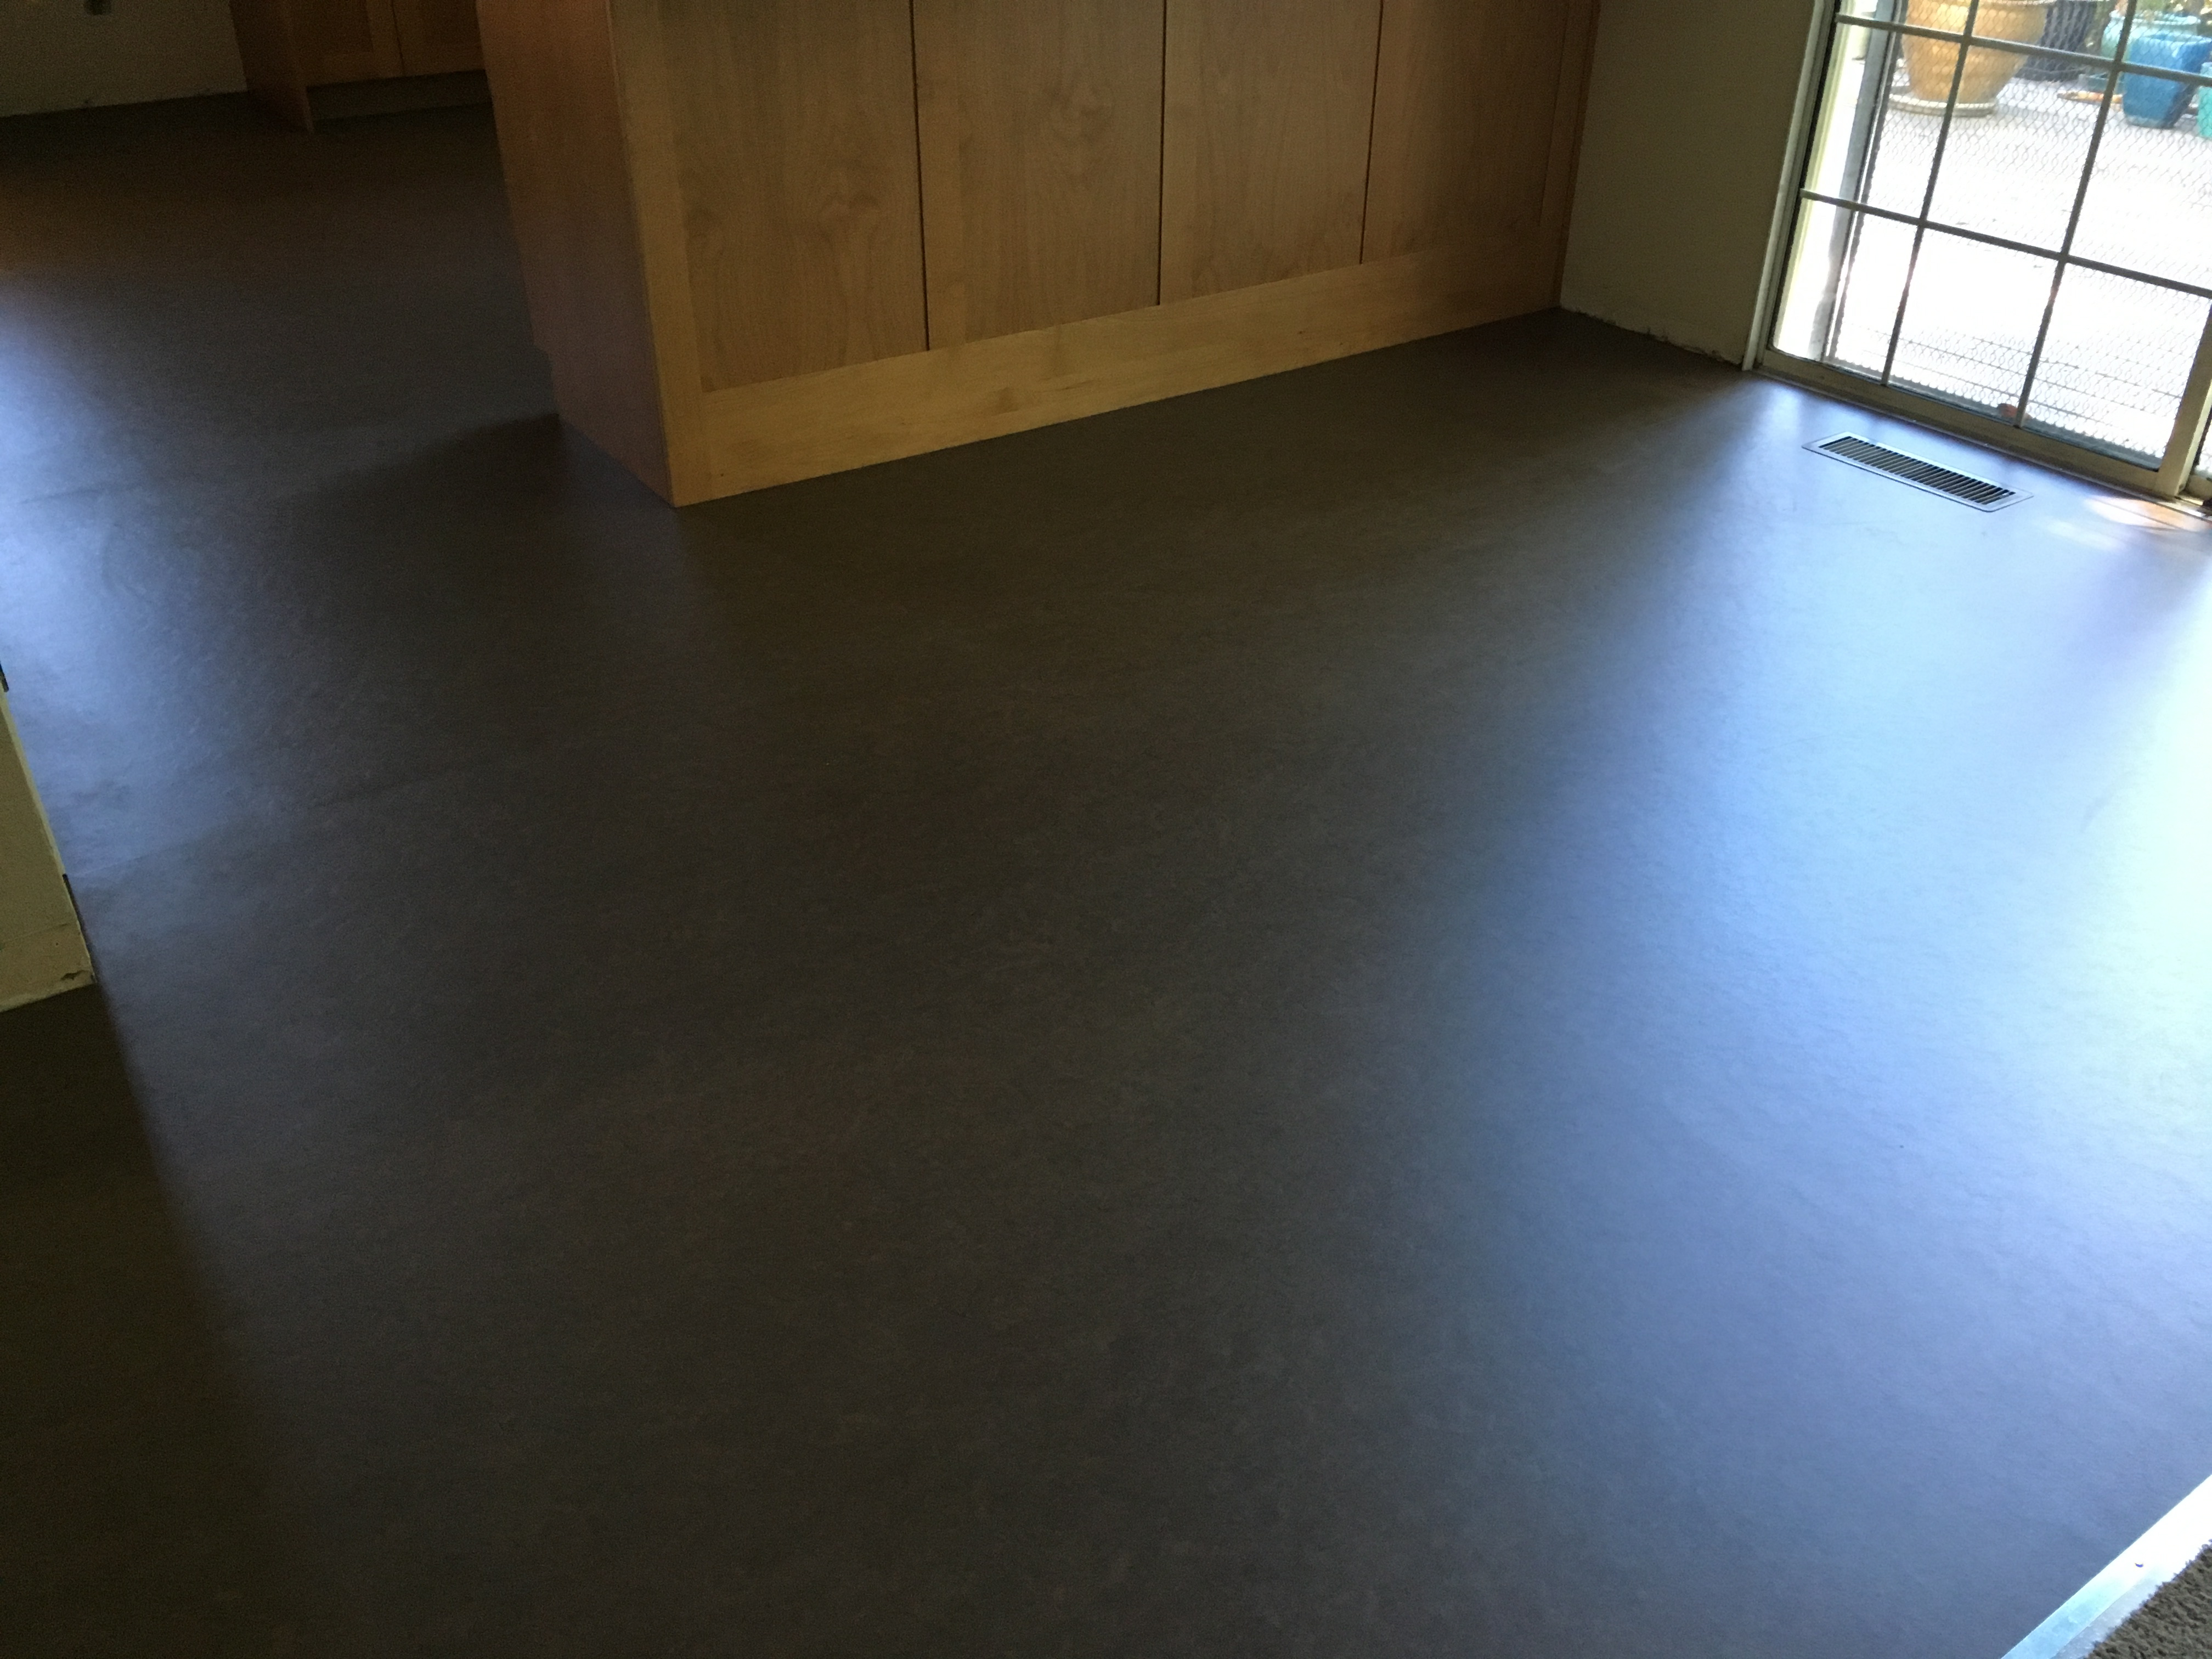 Marmoleum Sheet Flooring Install As A Flat Lay In Kitchen Dinning Area